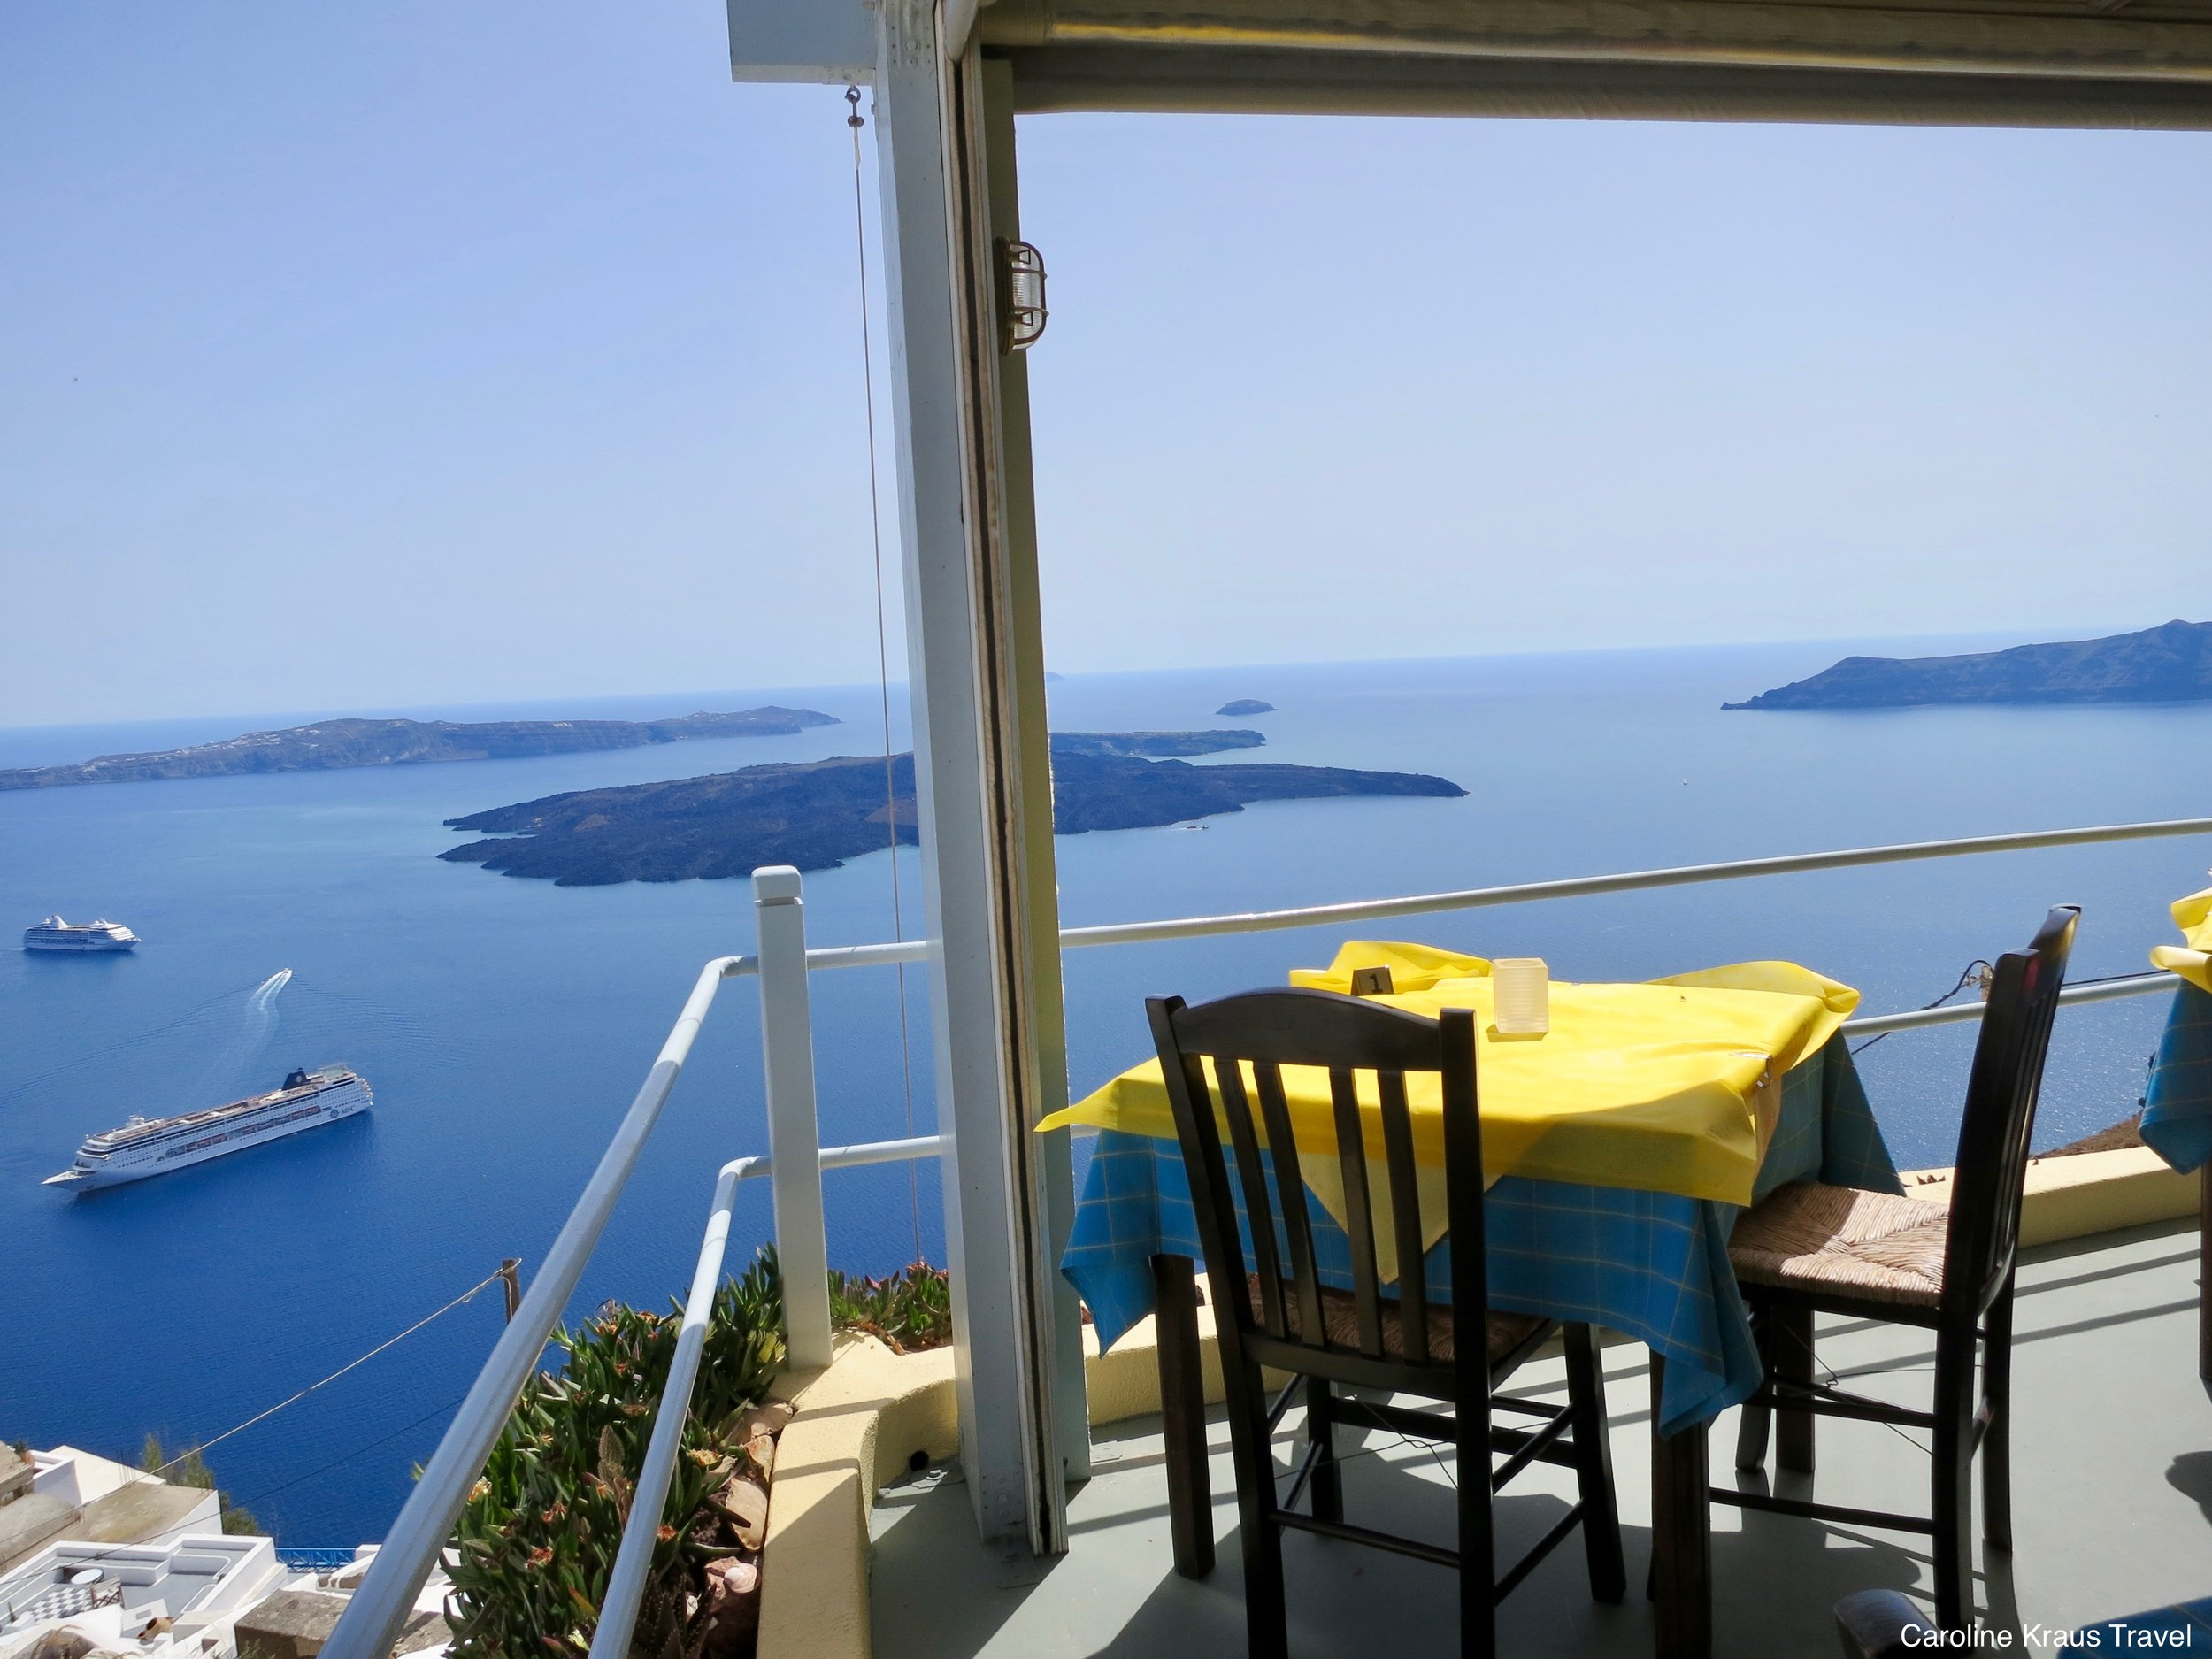 Lunch with a view in Santorini, Greece